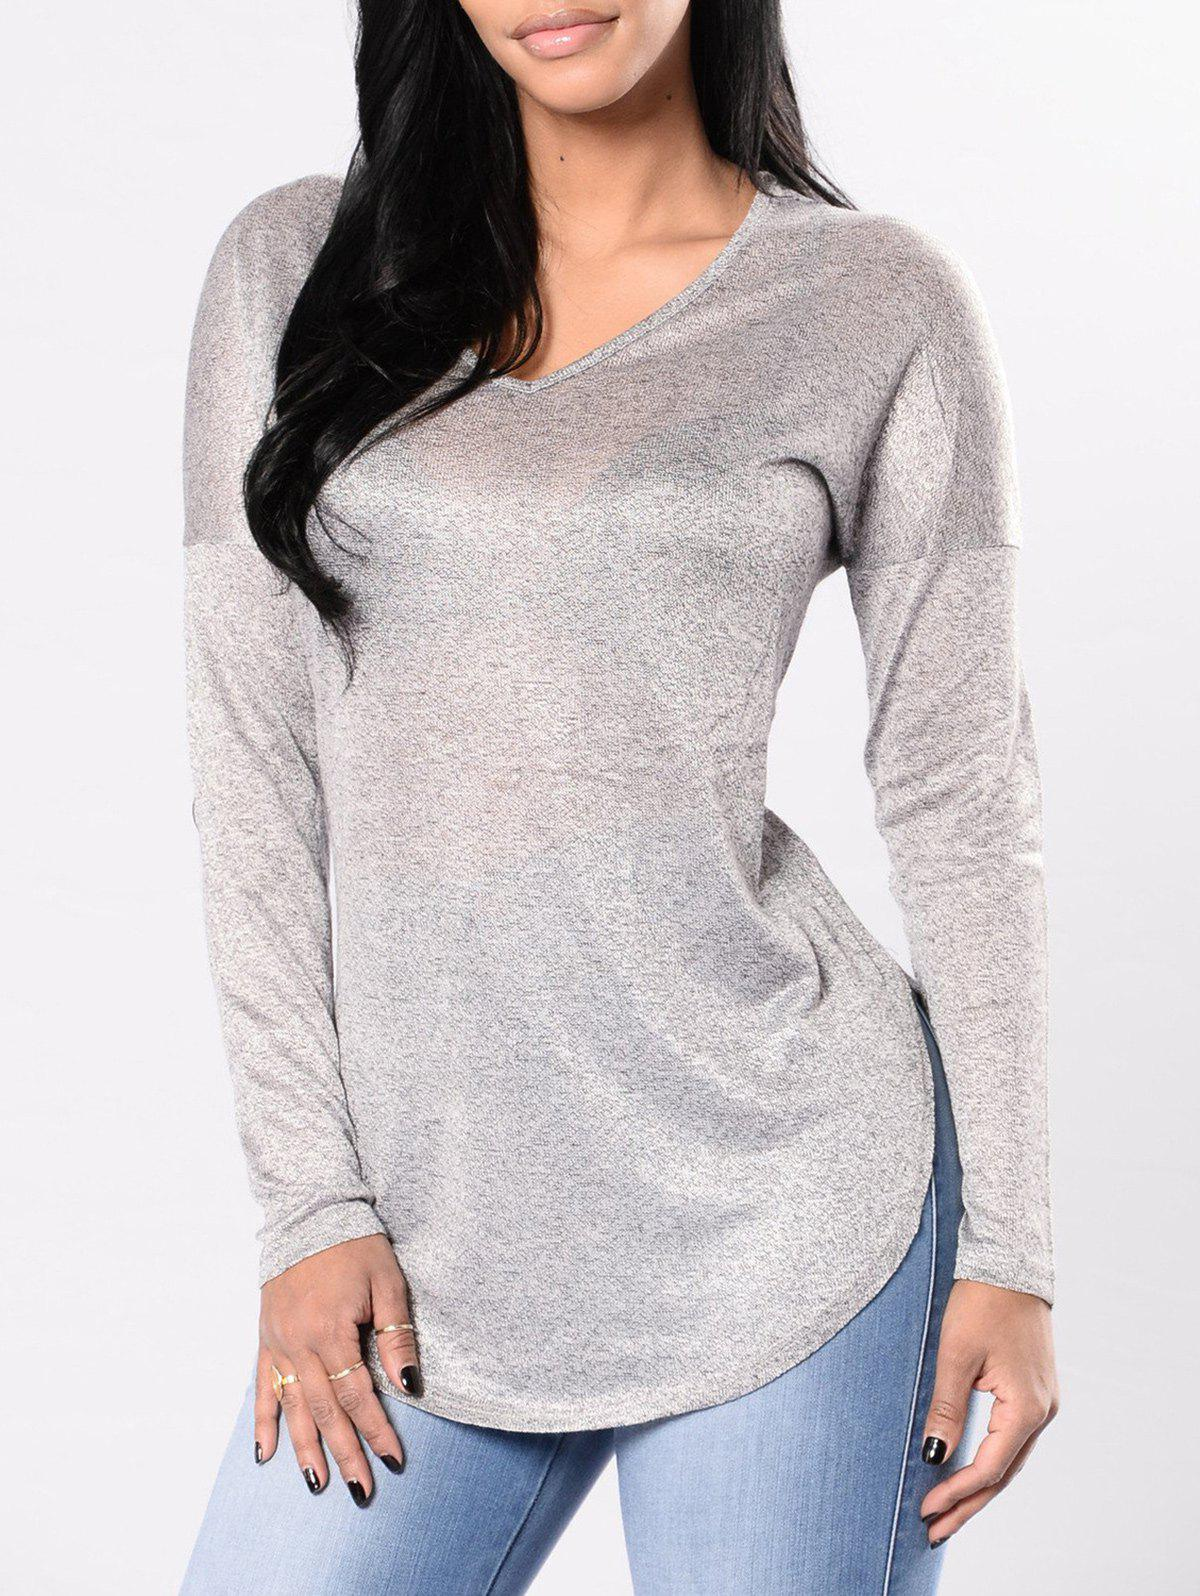 Shop Elbow Patches Slit Long Sleeve T-shirt